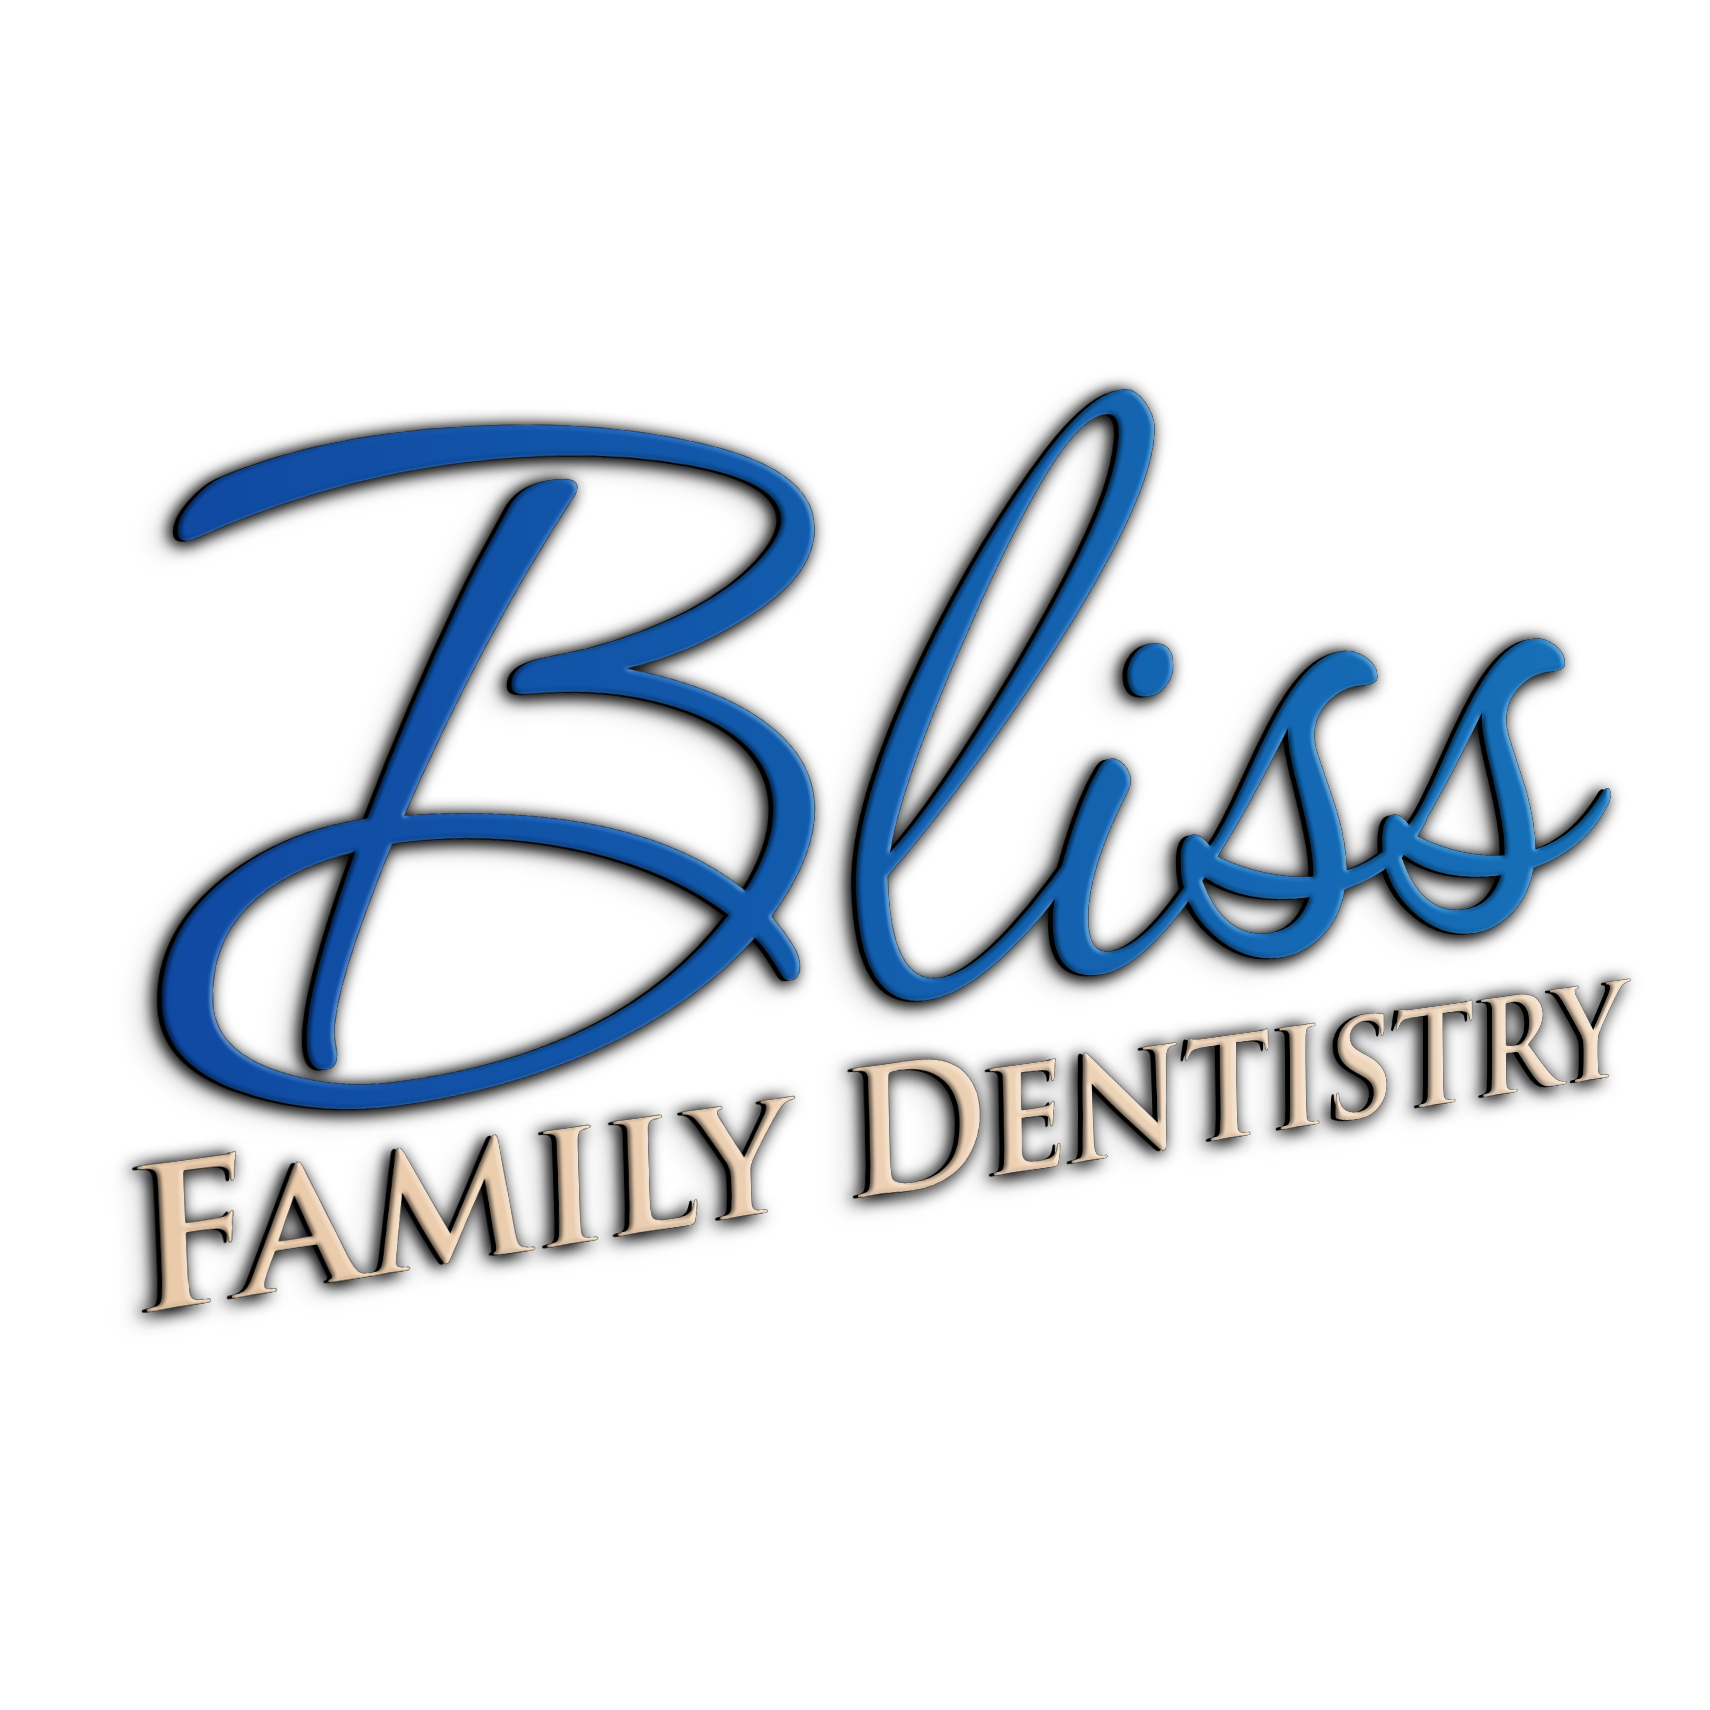 Bliss Family Dentistry - El Paso, TX - Dentists & Dental Services